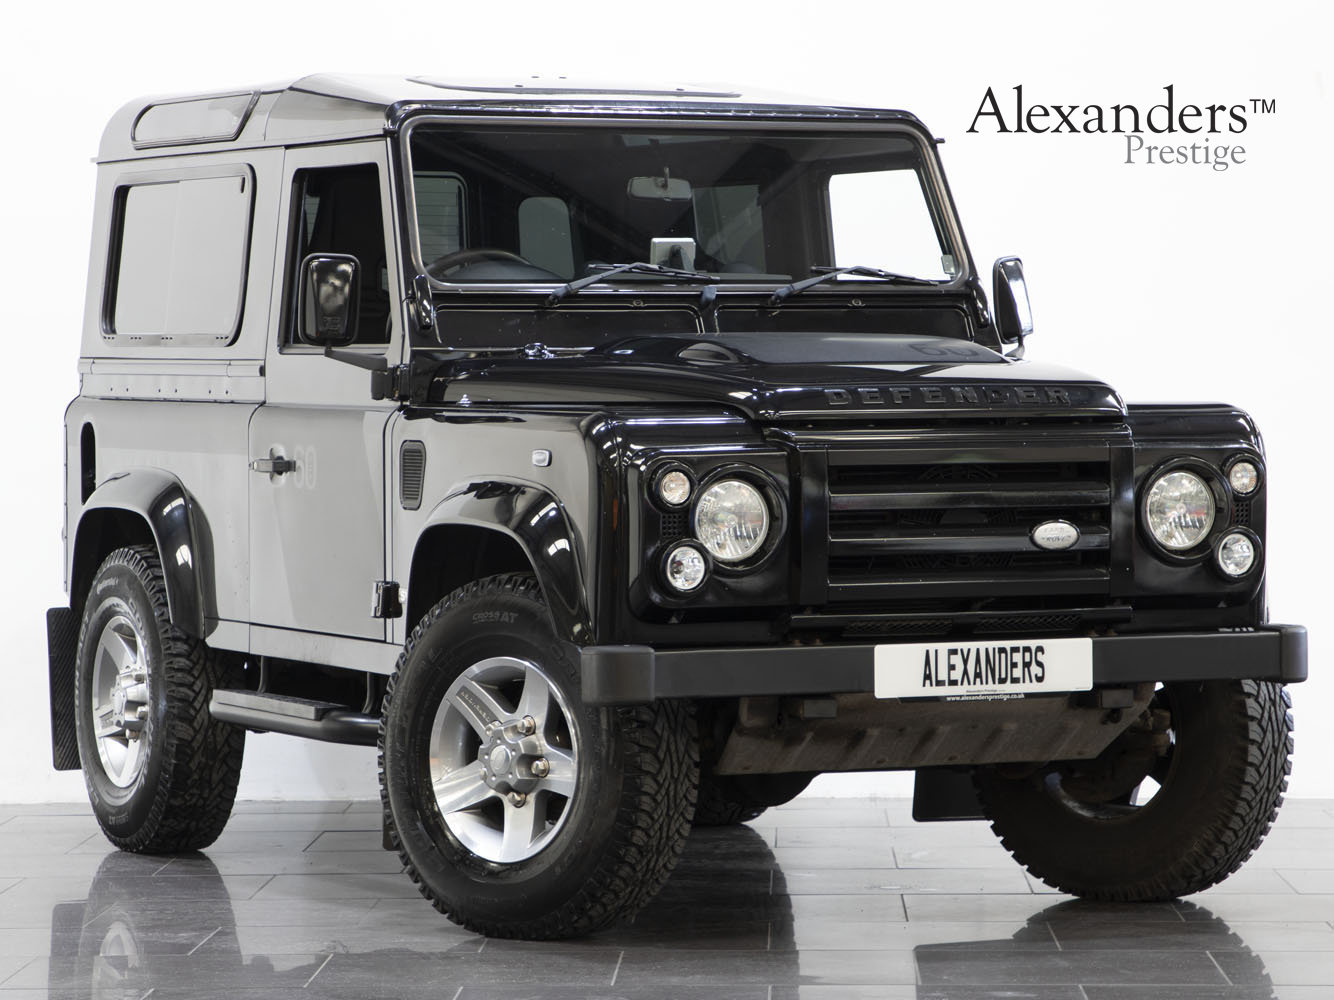 2008 08 58 LAND ROVER DEFENDER 90 SVX 60TH ANNIVERSARY EDITION For Sale (picture 1 of 6)